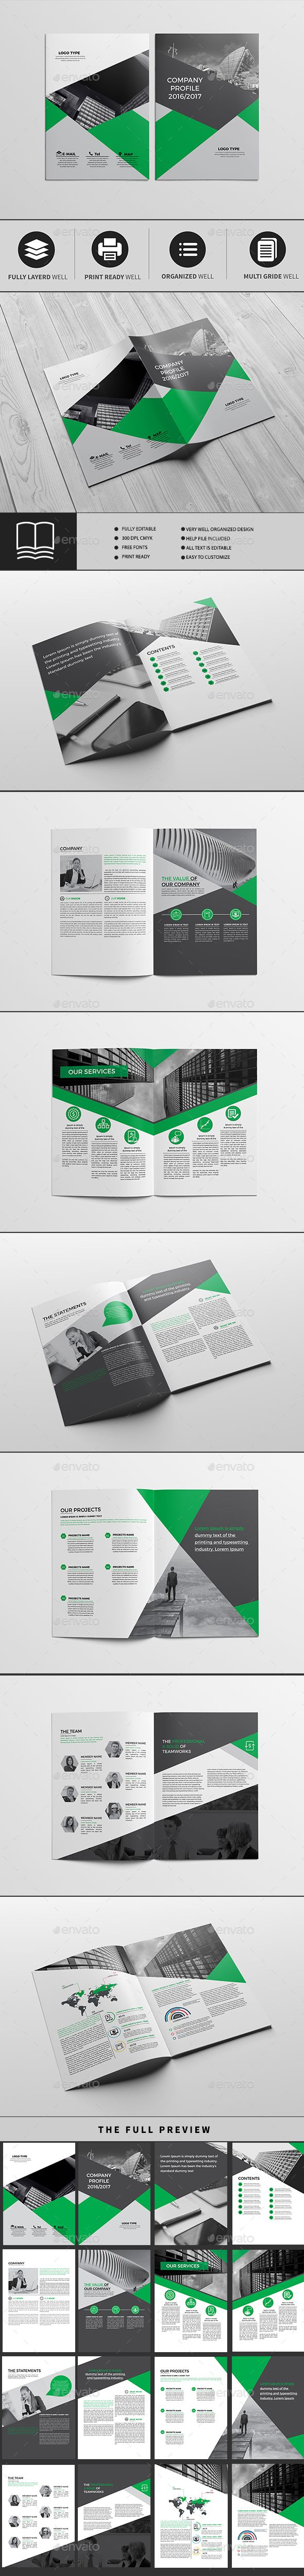 Company Profile A4 16 Pages — InDesign INDD #elegant #21x29.7 • Download ➝ https://graphicriver.net/item/company-profile-a4-16-pages/19244886?ref=pxcr